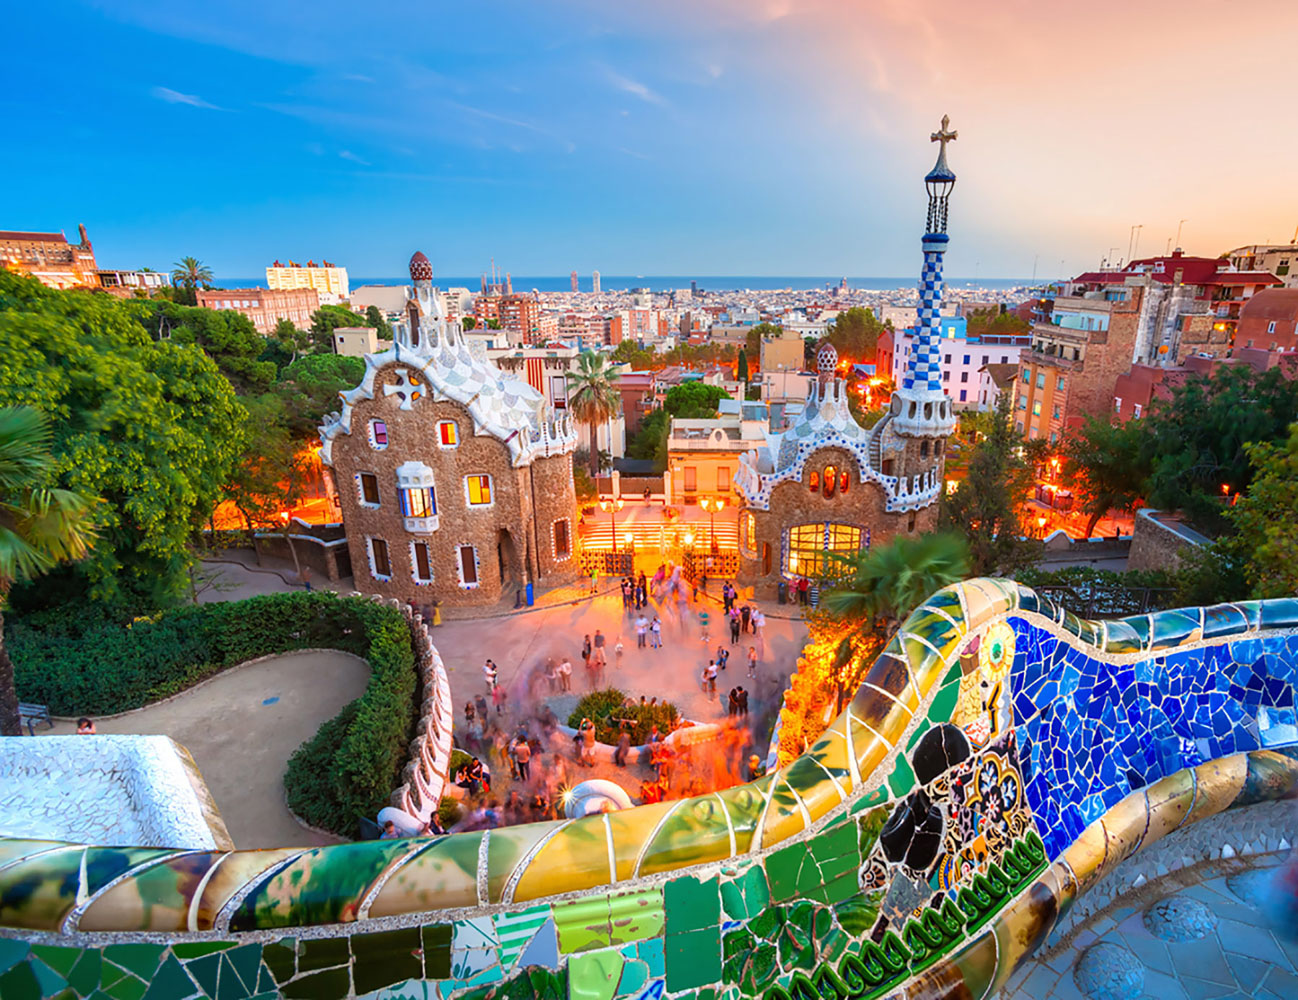 Parc Guell in Barcelona, Spain, at sunset.